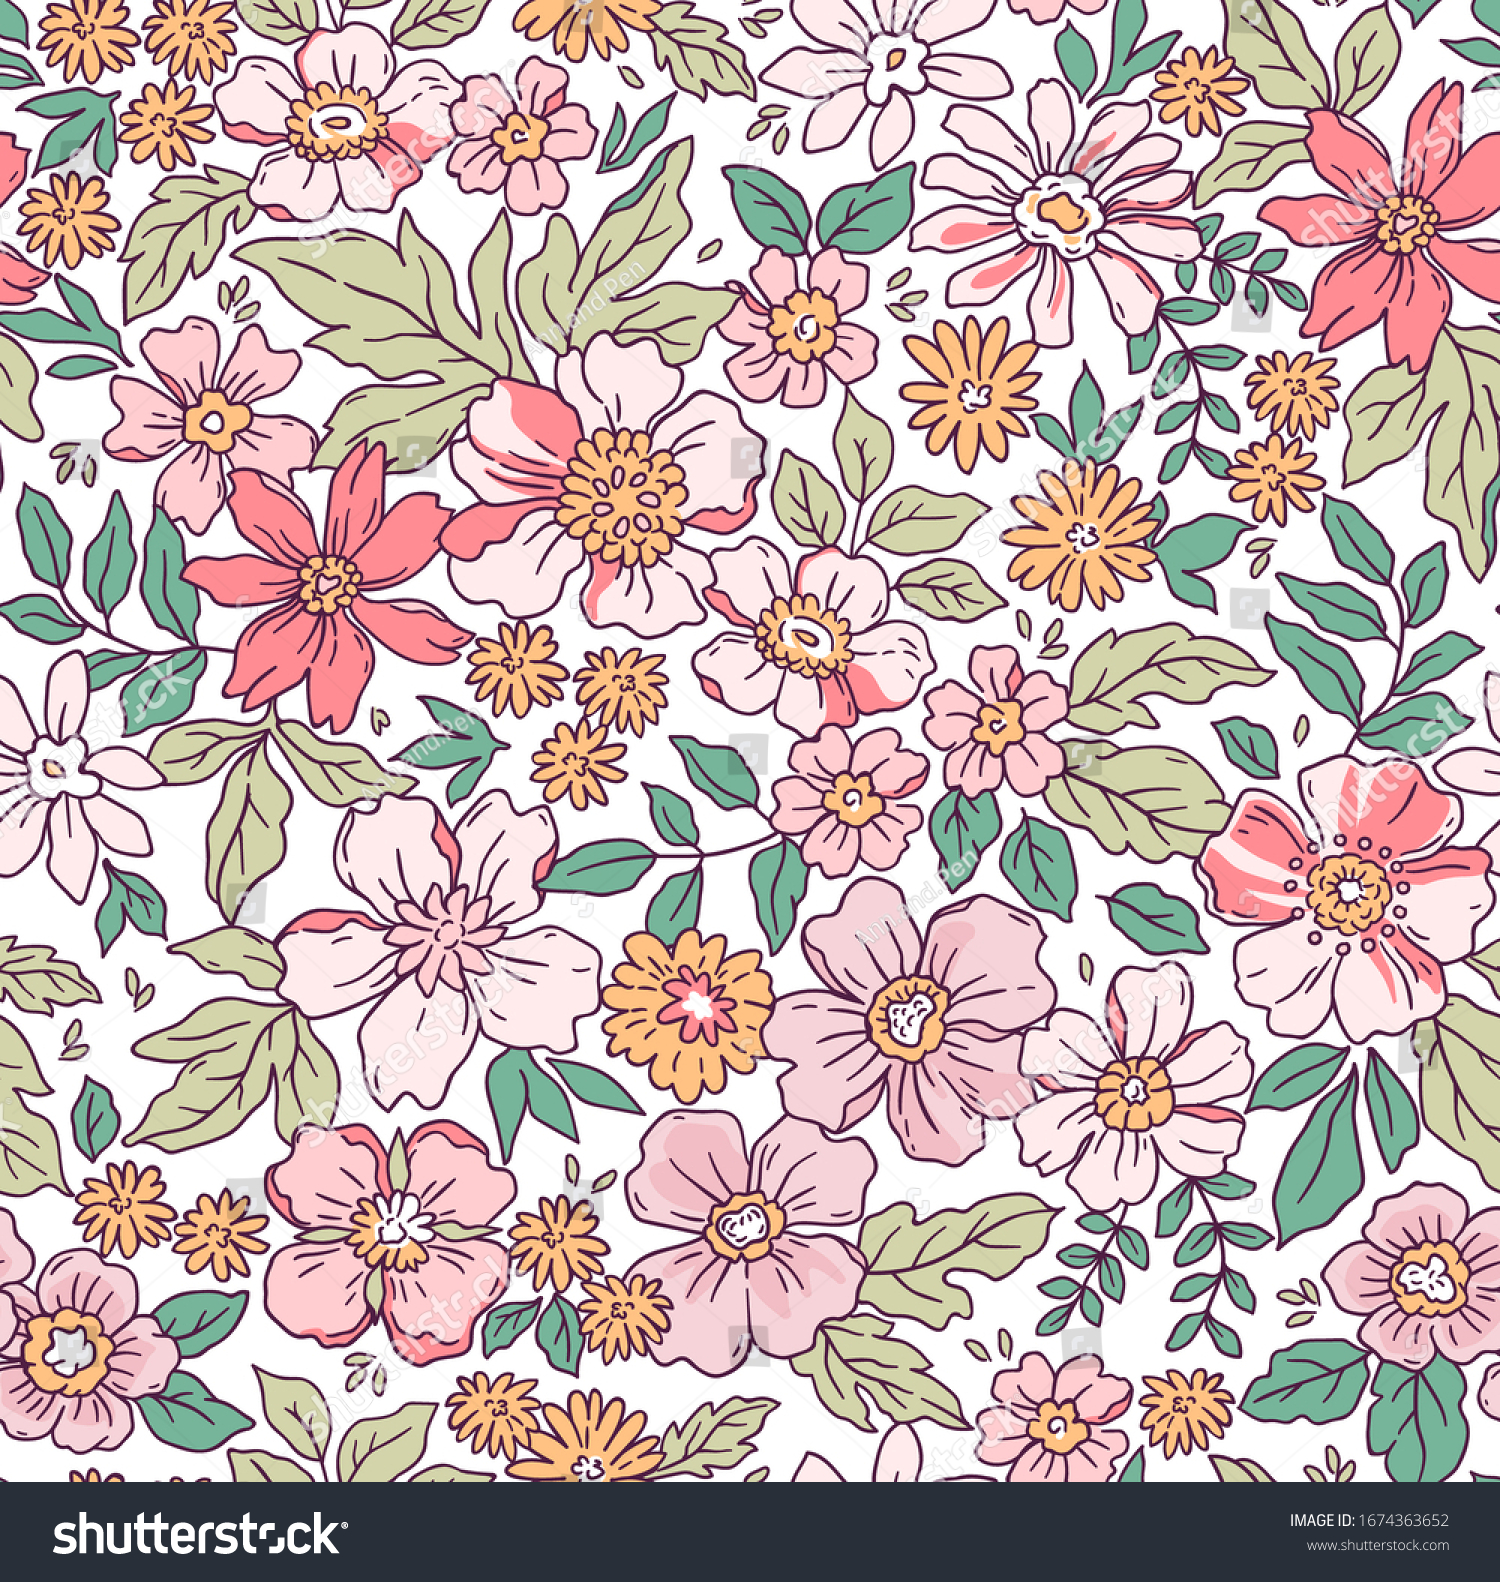 Elegant floral pattern in small hand draw flower. Liberty style. Floral seamless background for fashion prints. Vintage print. Seamless vector texture. Spring bouquet.